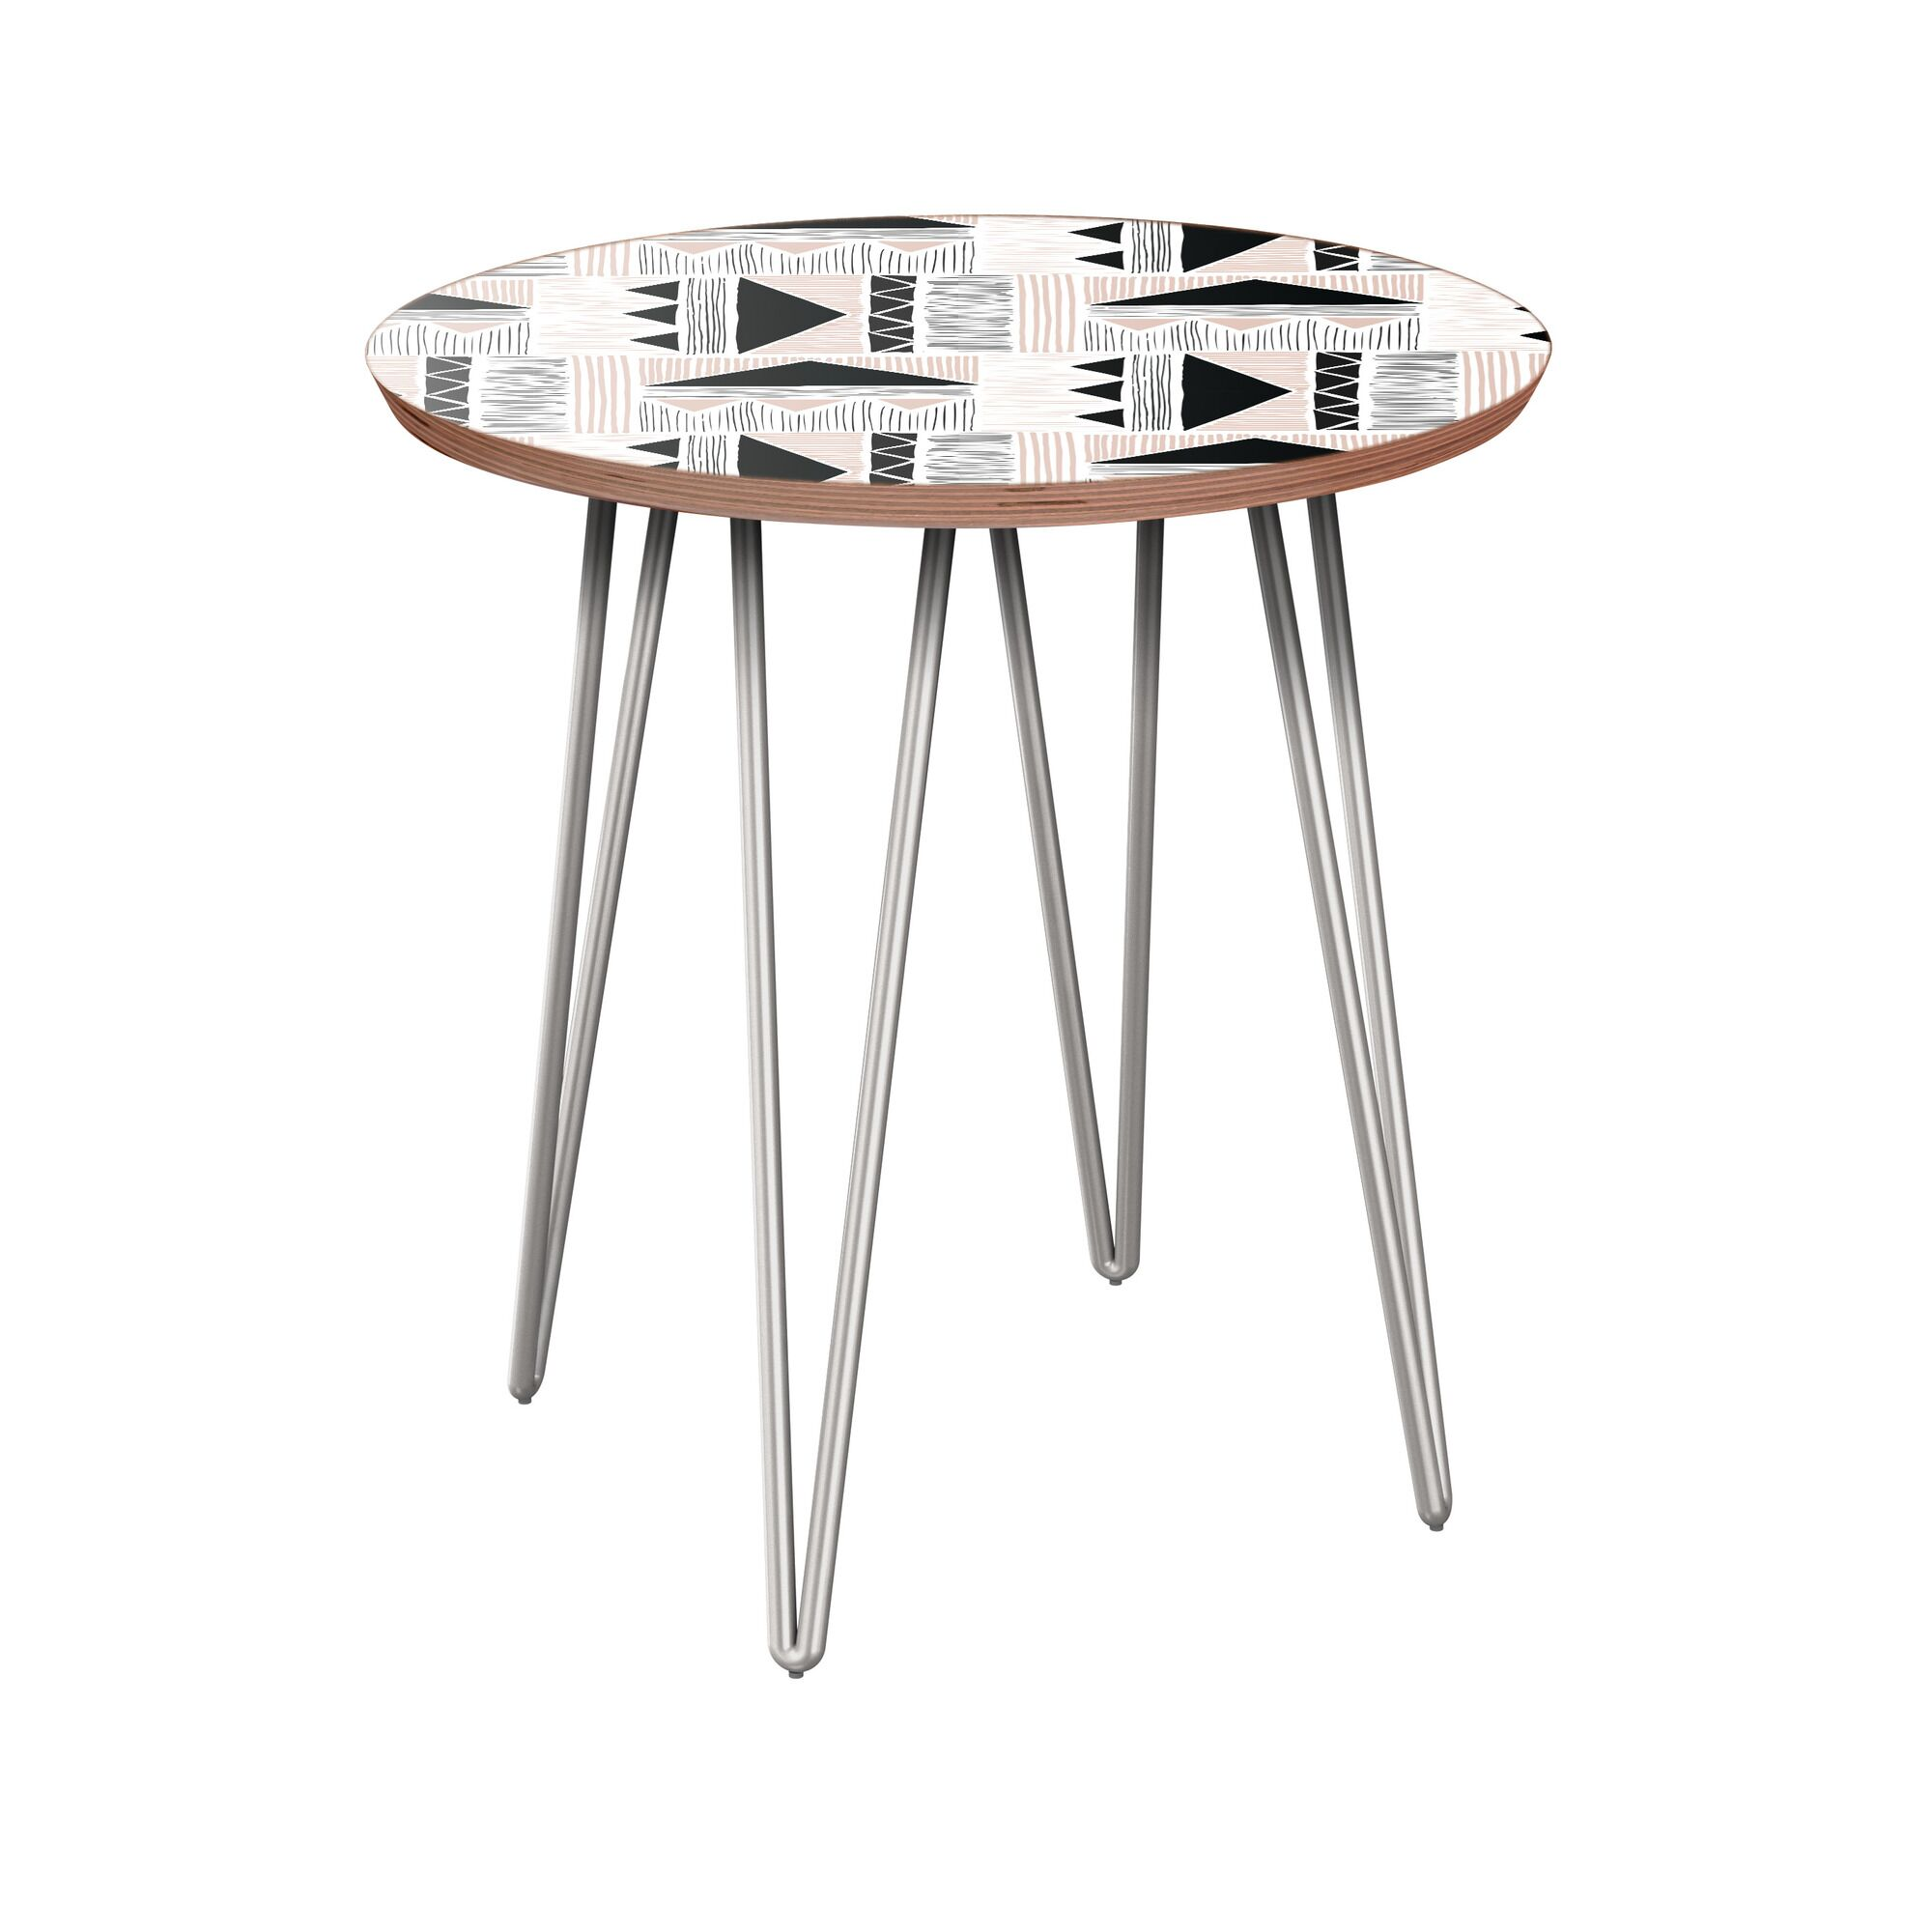 Horst End Table Table Base Color: Chrome, Table Top Color: Walnut